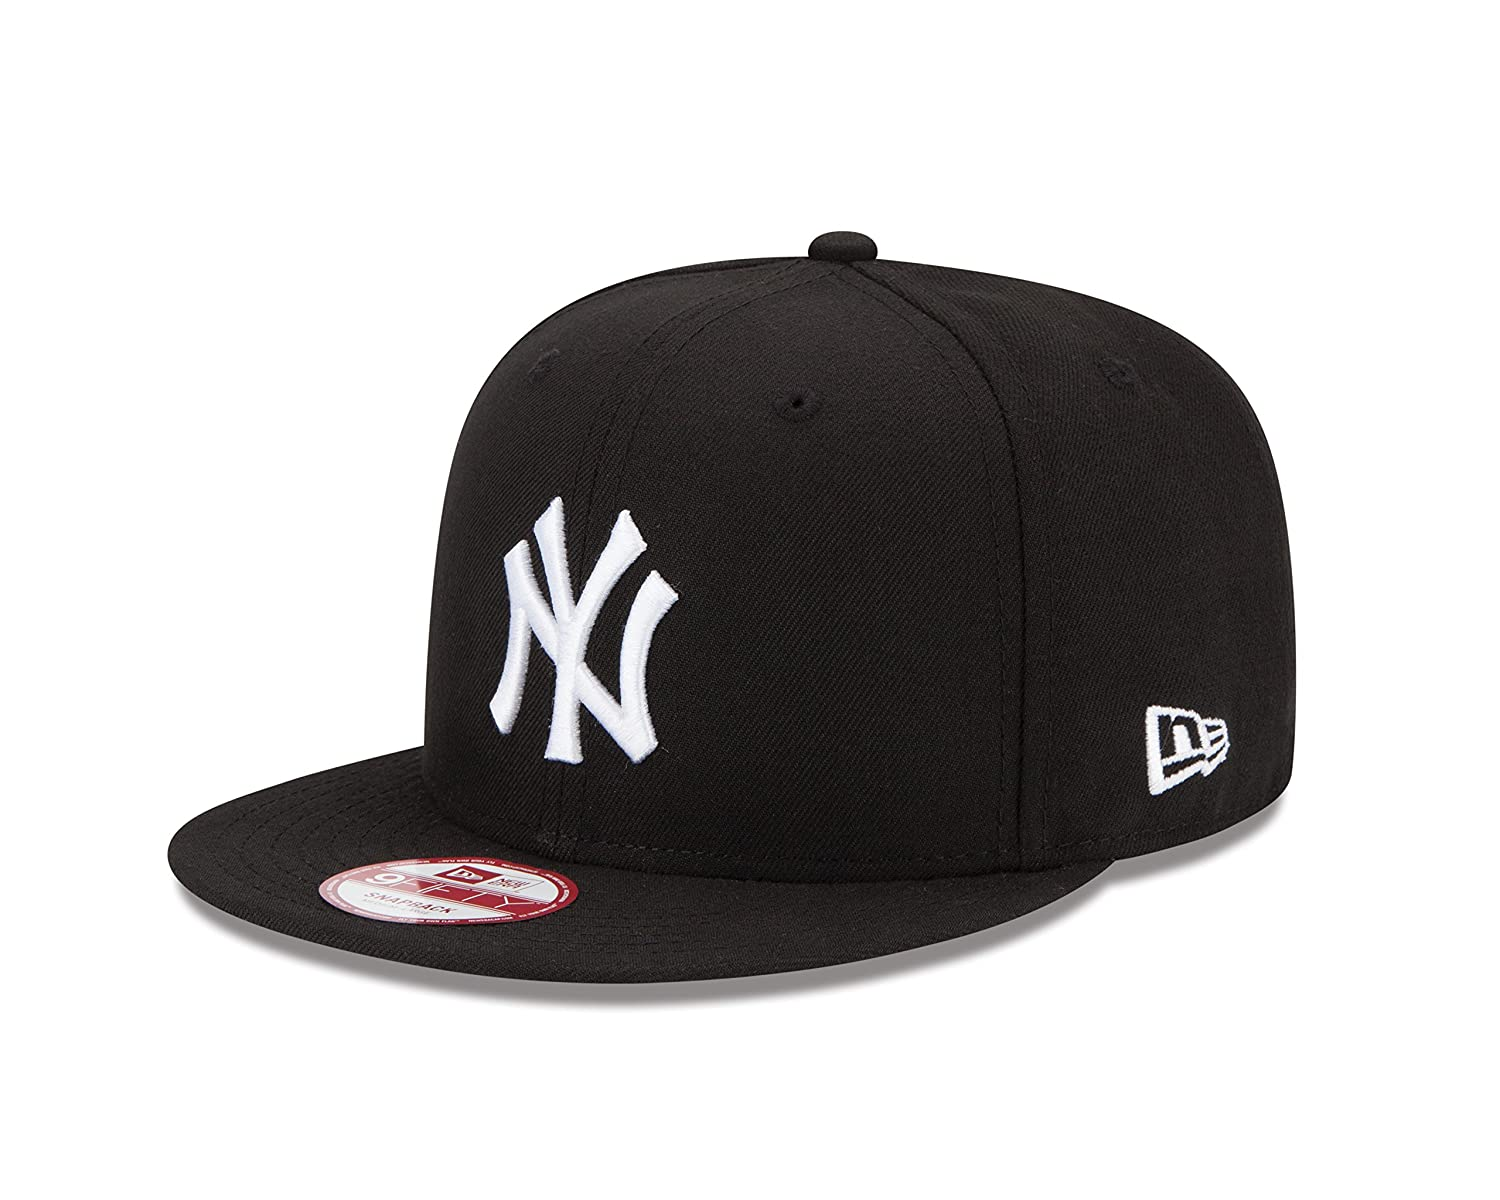 Amazon.com  New Era York Yankees Baycik 9Fifty Men s Snapback Hat Cap Black White  11085748  Sports   Outdoors 300ab6552962